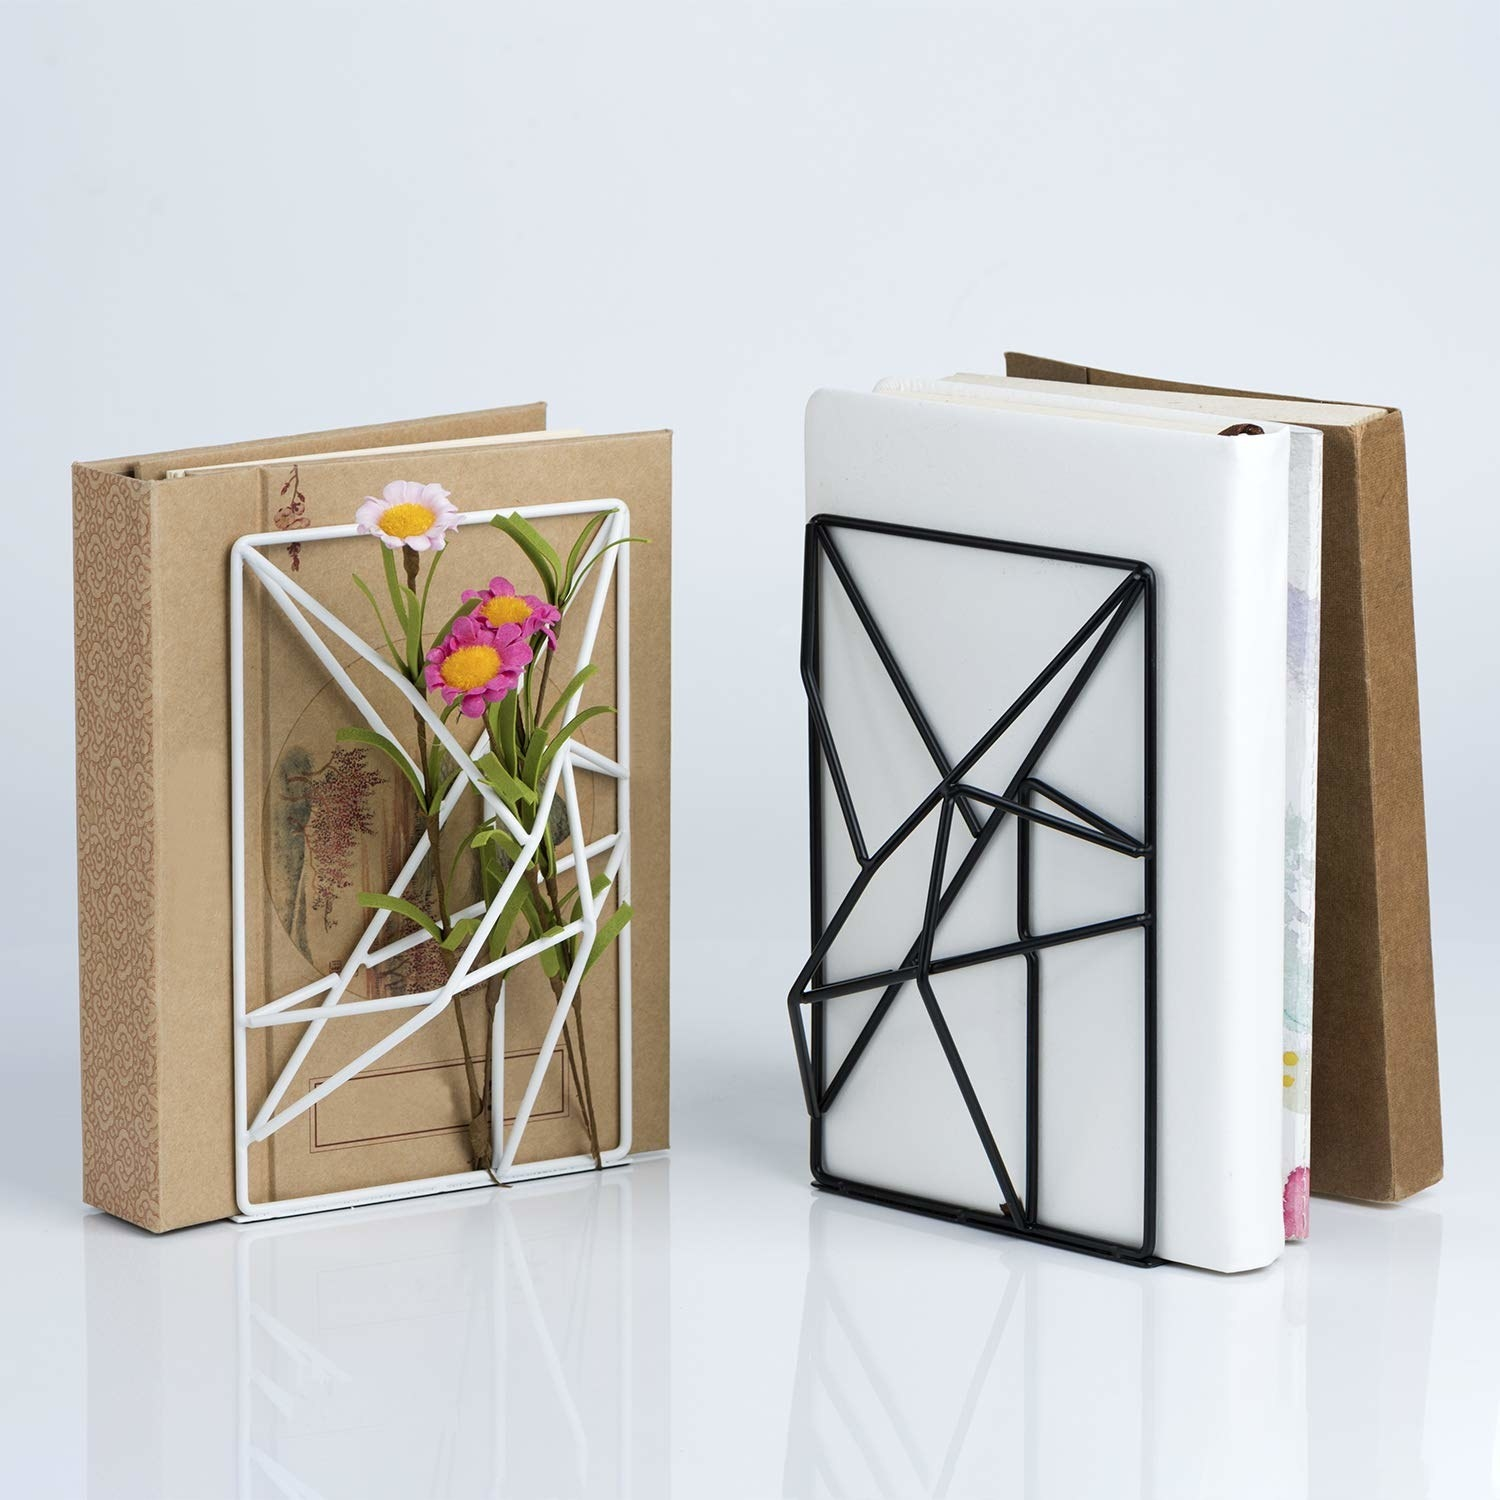 Geometric bookends in black and white